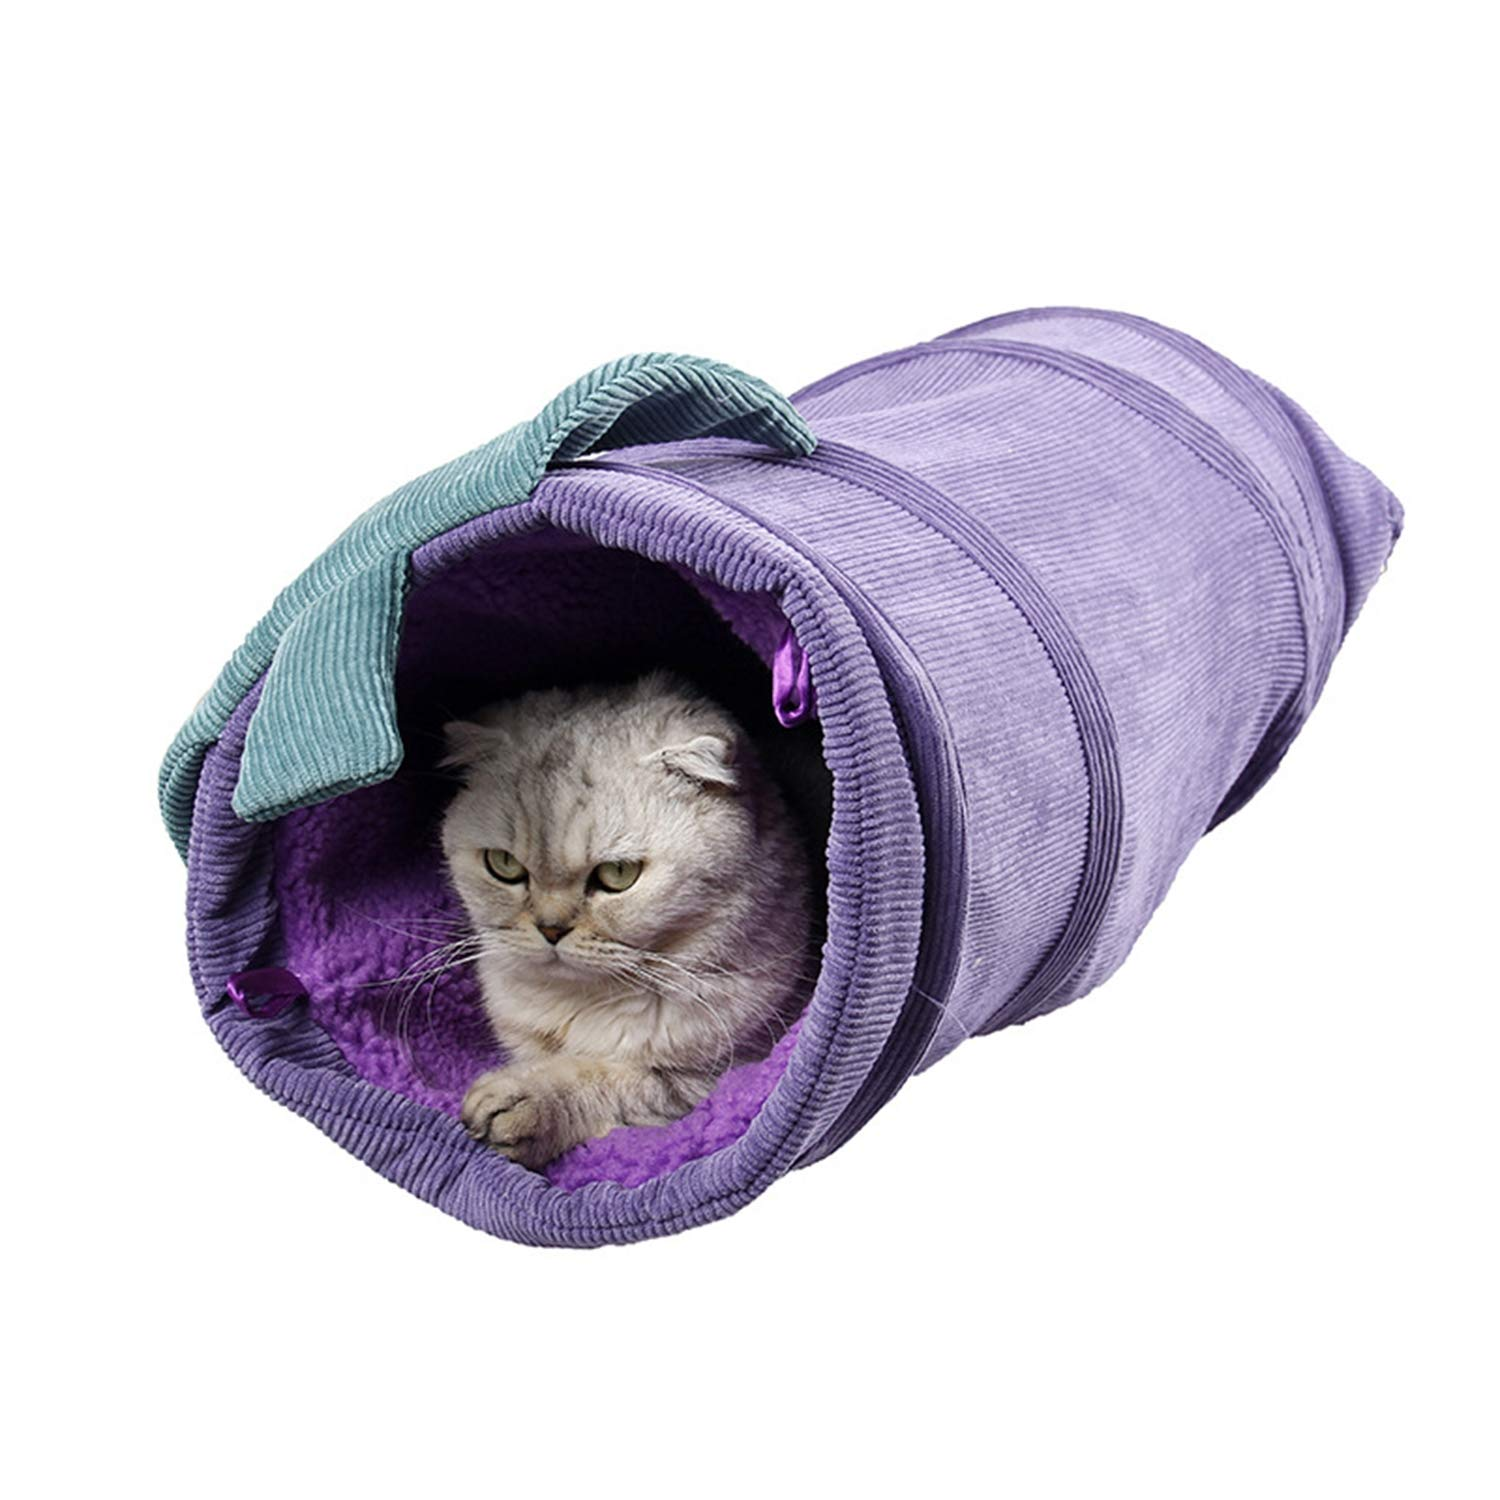 Cat Tunnel Toy,Corduroy Pet Nest Cat Toy Foldable Vegetable Type Channel to Keep Warm in Winter,Purple